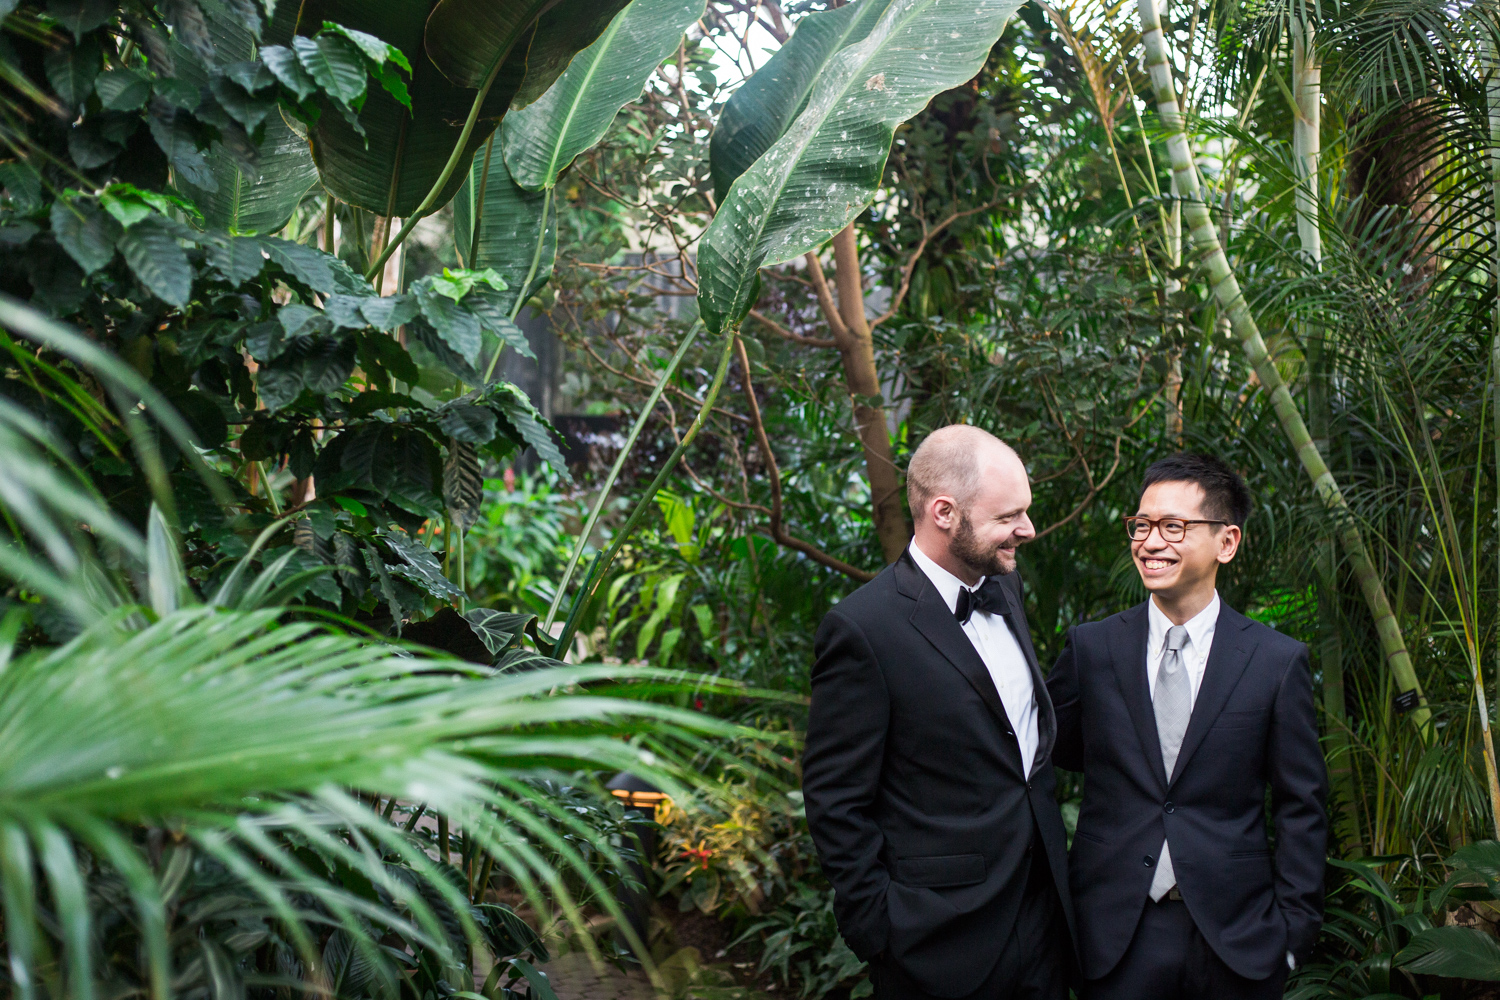 Gay wedding in Vancouver